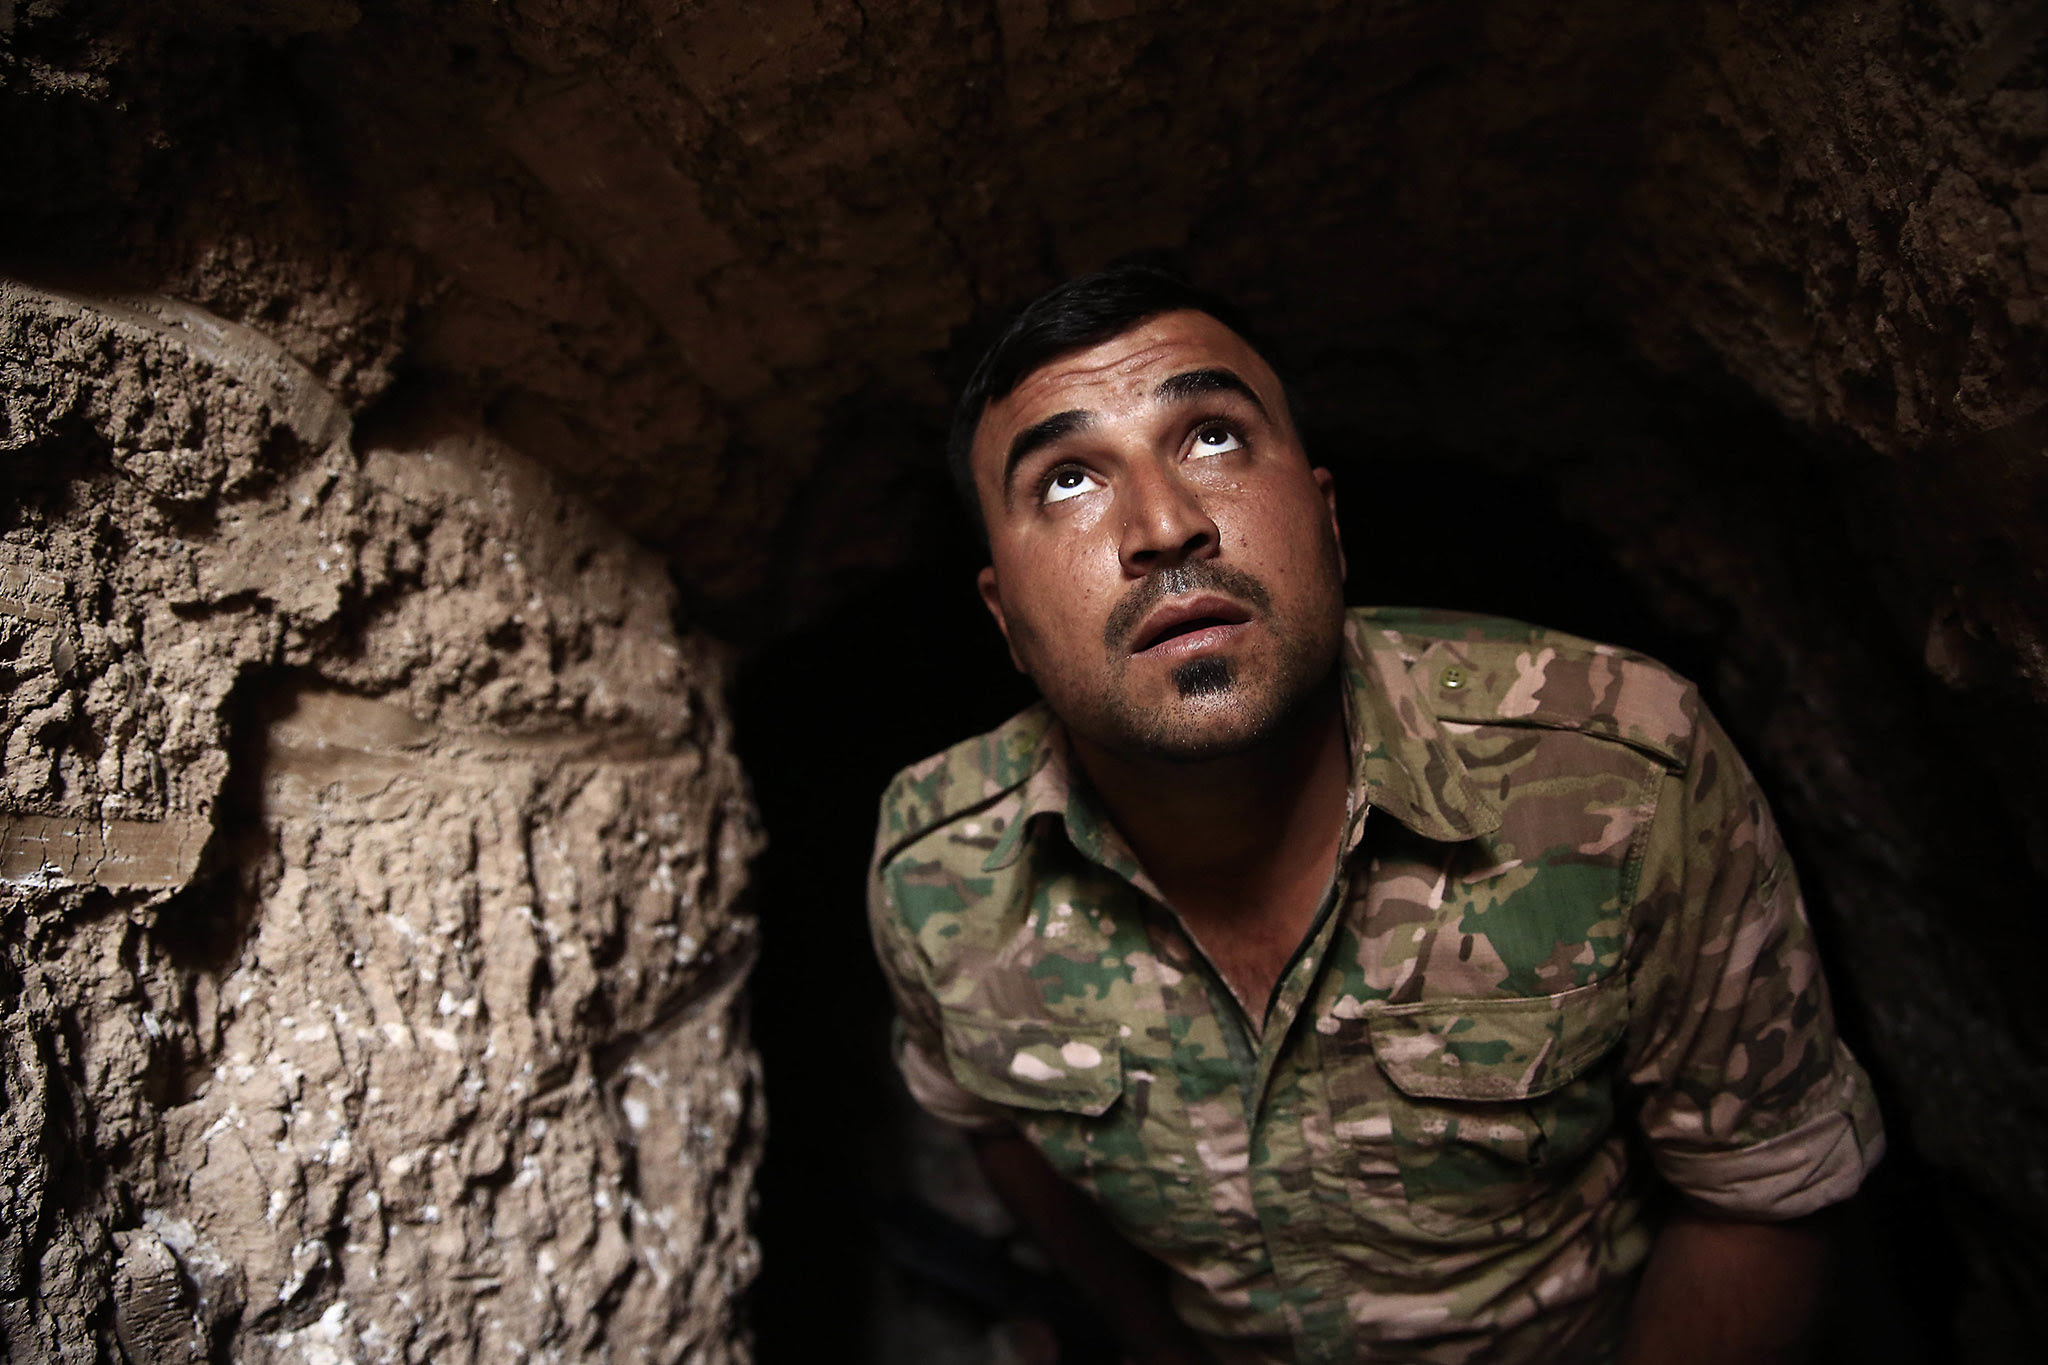 A peshmerga fighter looks out of the entrance of an underground tunnel built by Islamic State fighters, Tuesday, Oct. 18, 2016. The Kurdish forces found the tunnel in the town of Badana that was liberated from the Islamic State group on Monday. The fighters built tunnels under residential areas so they could move without being seen from above to avoid airstrikes. (AP Photo/Bram Janssen)